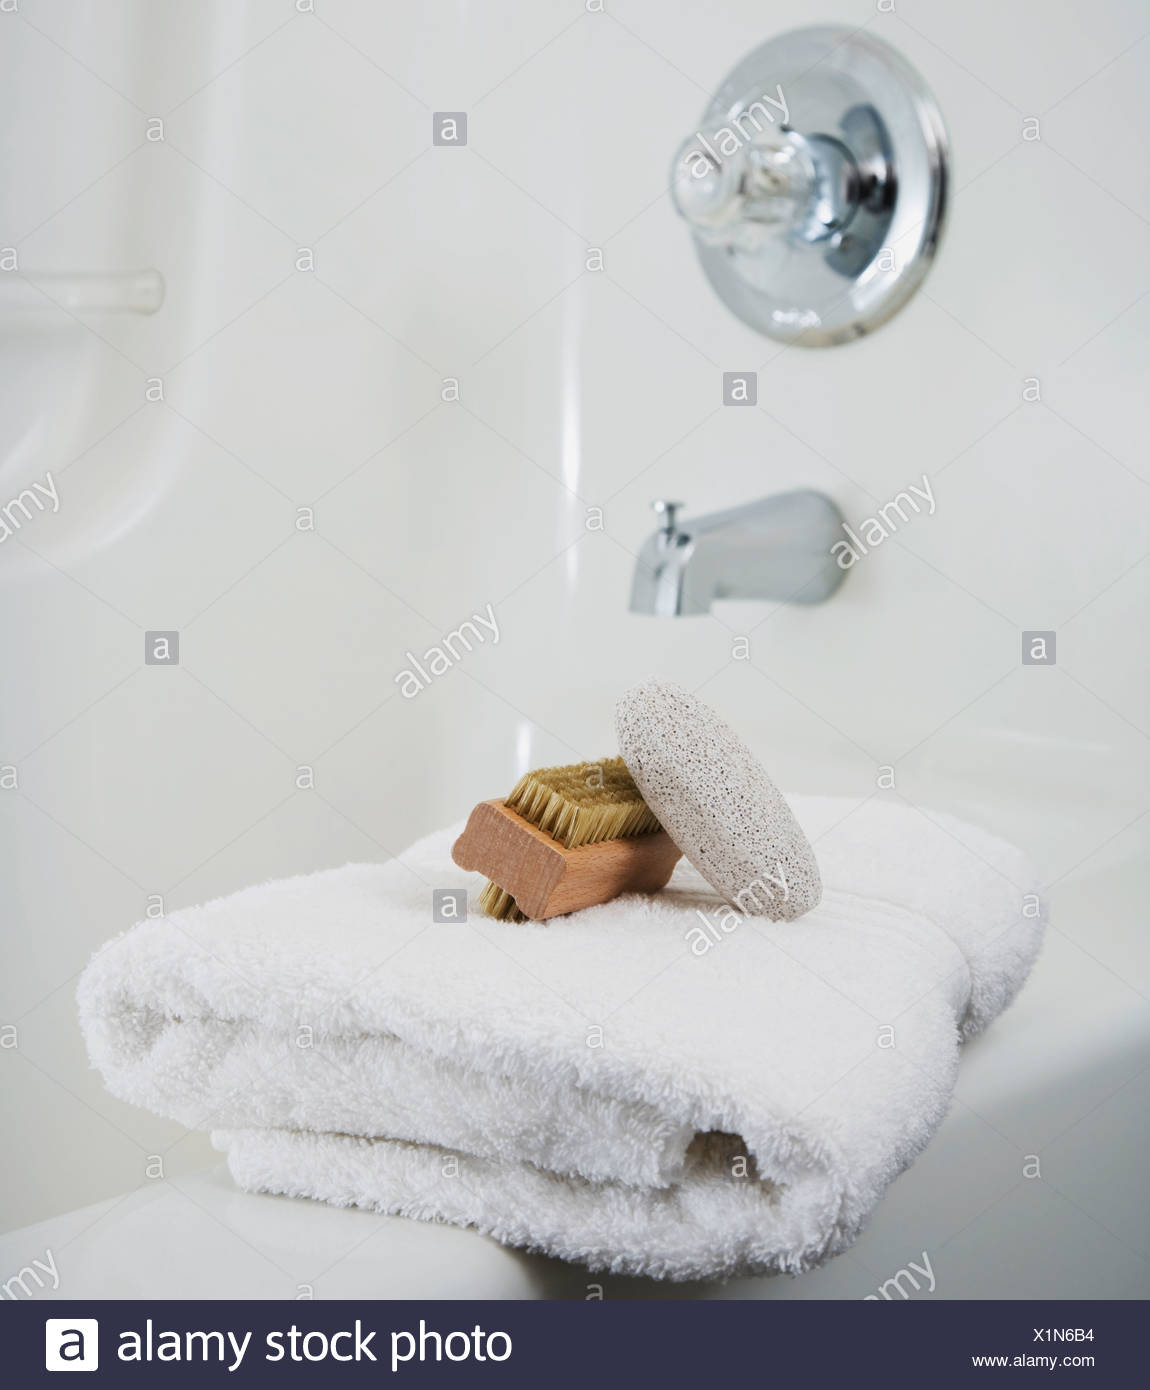 Towel On Bathtub Stock Photos & Towel On Bathtub Stock Images - Alamy